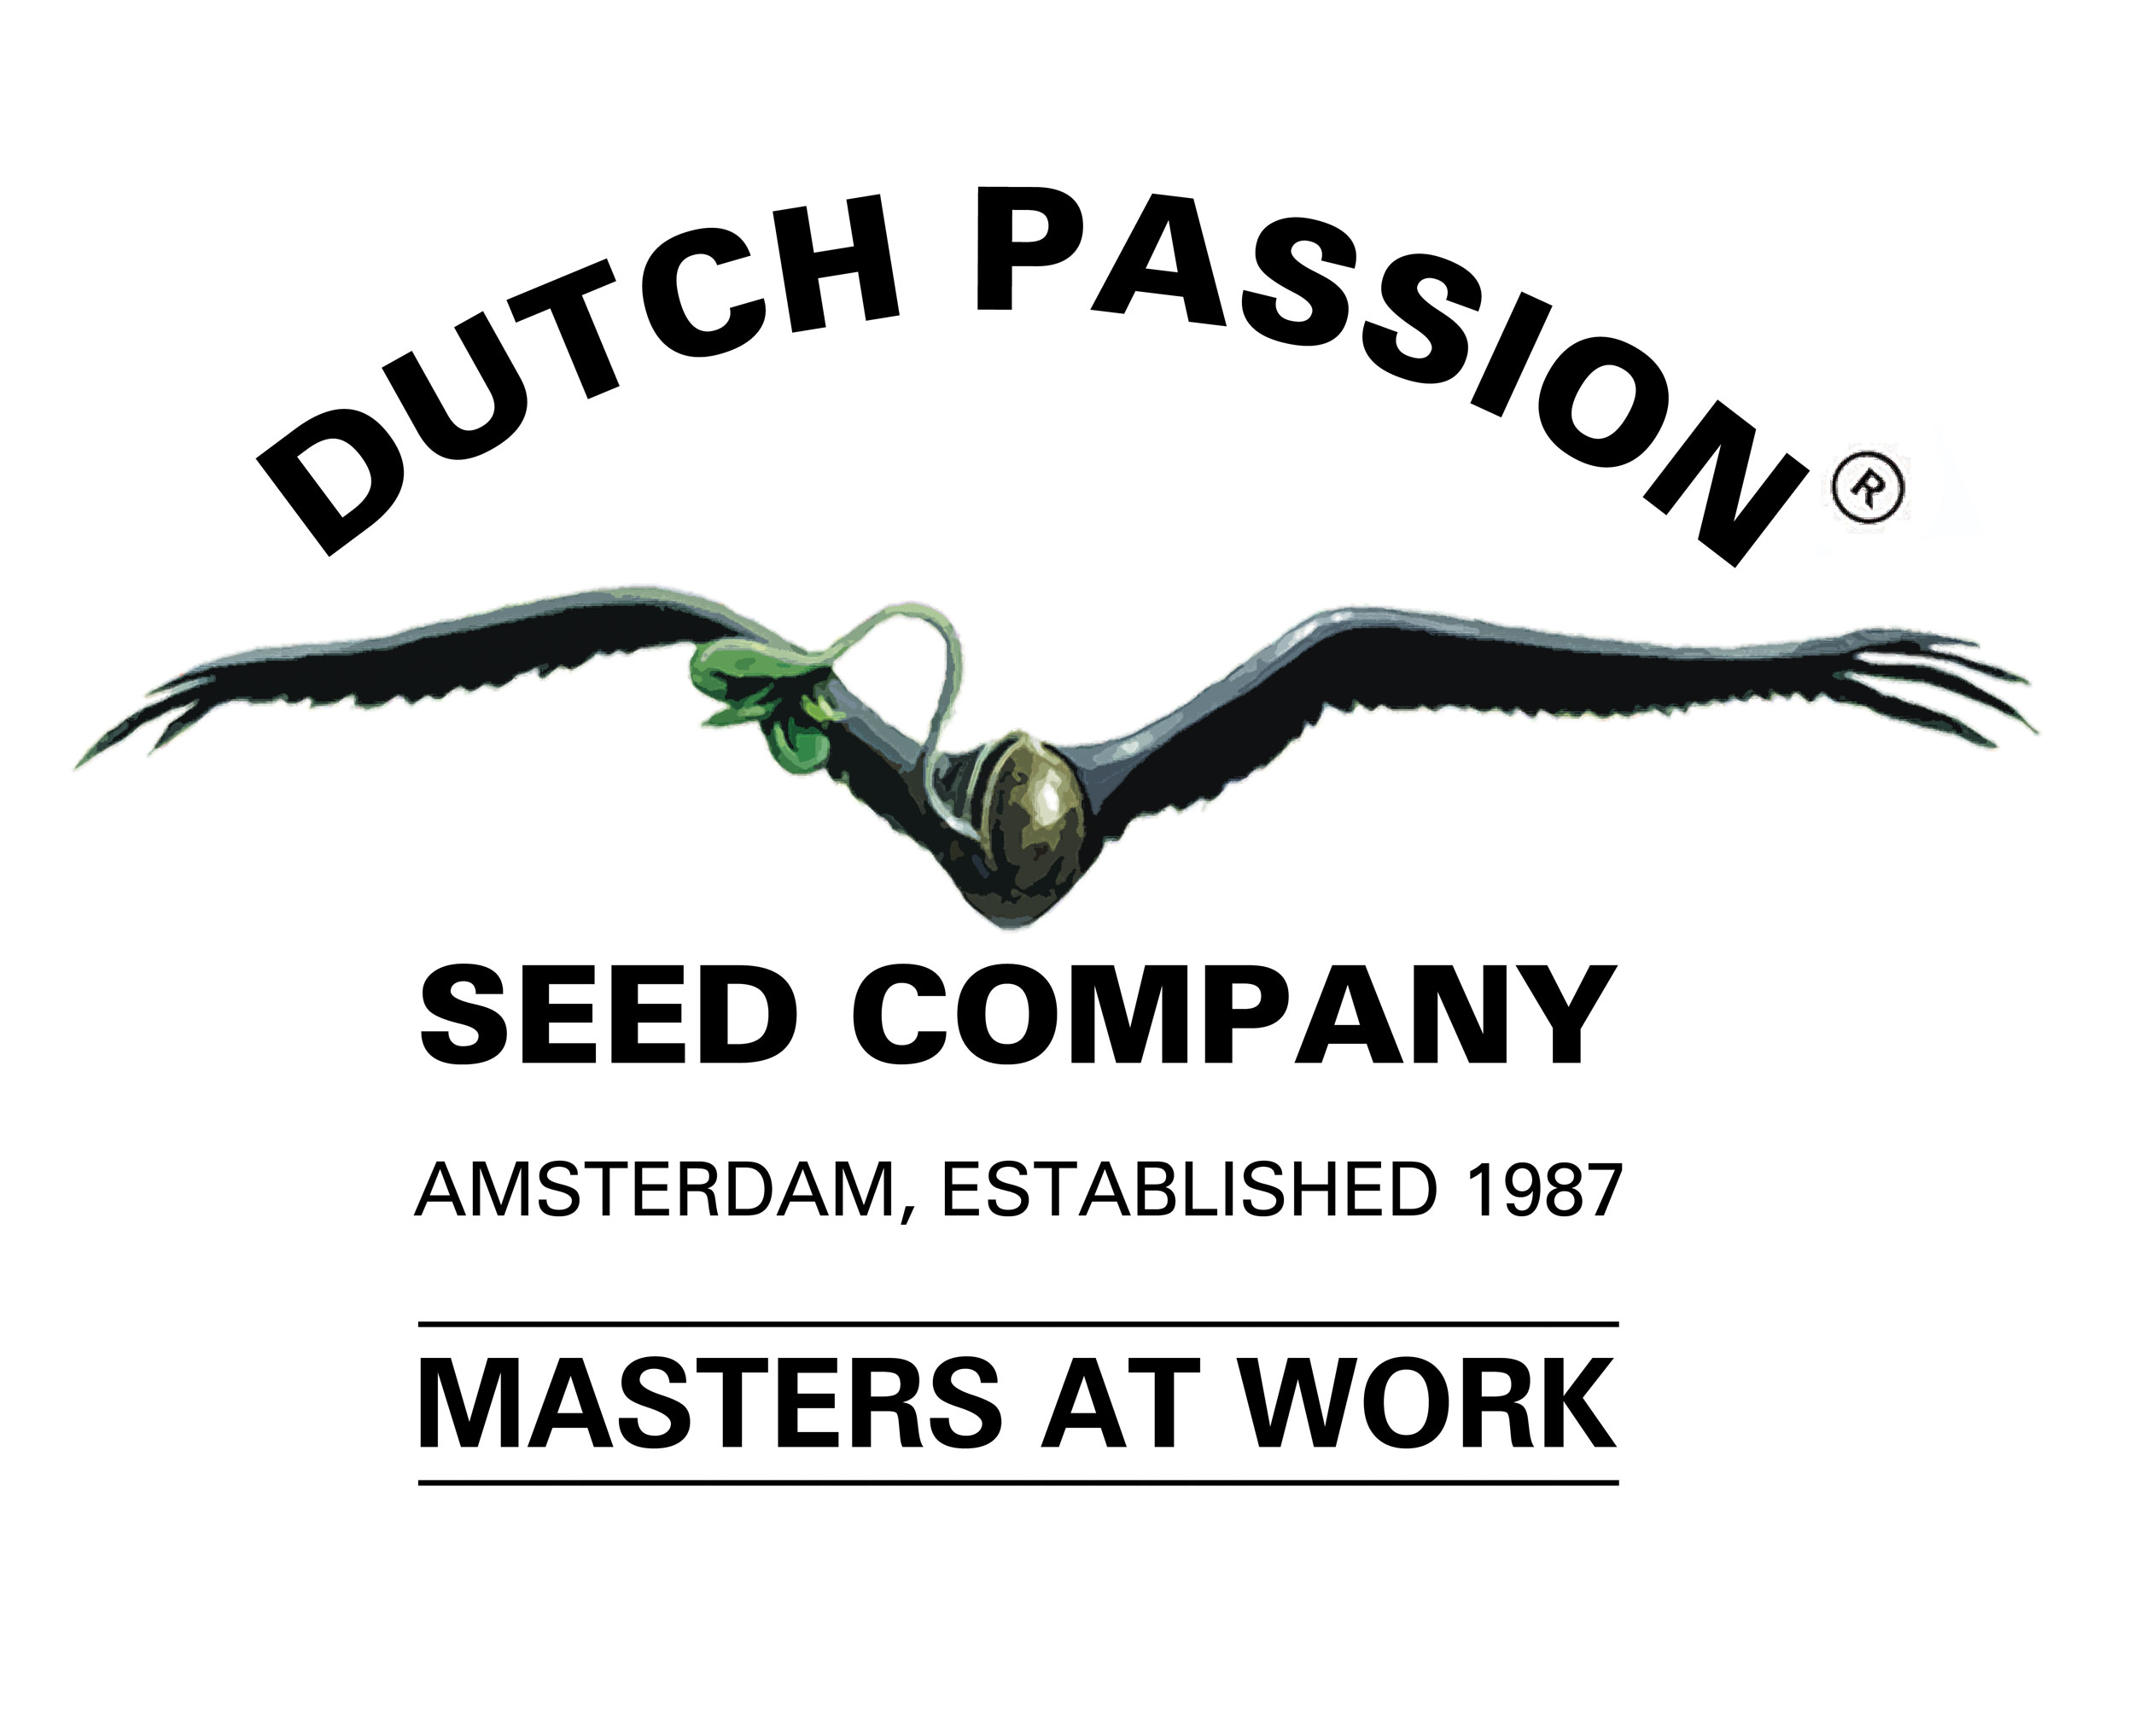 Dutch Passion Auto Mazar 7ks